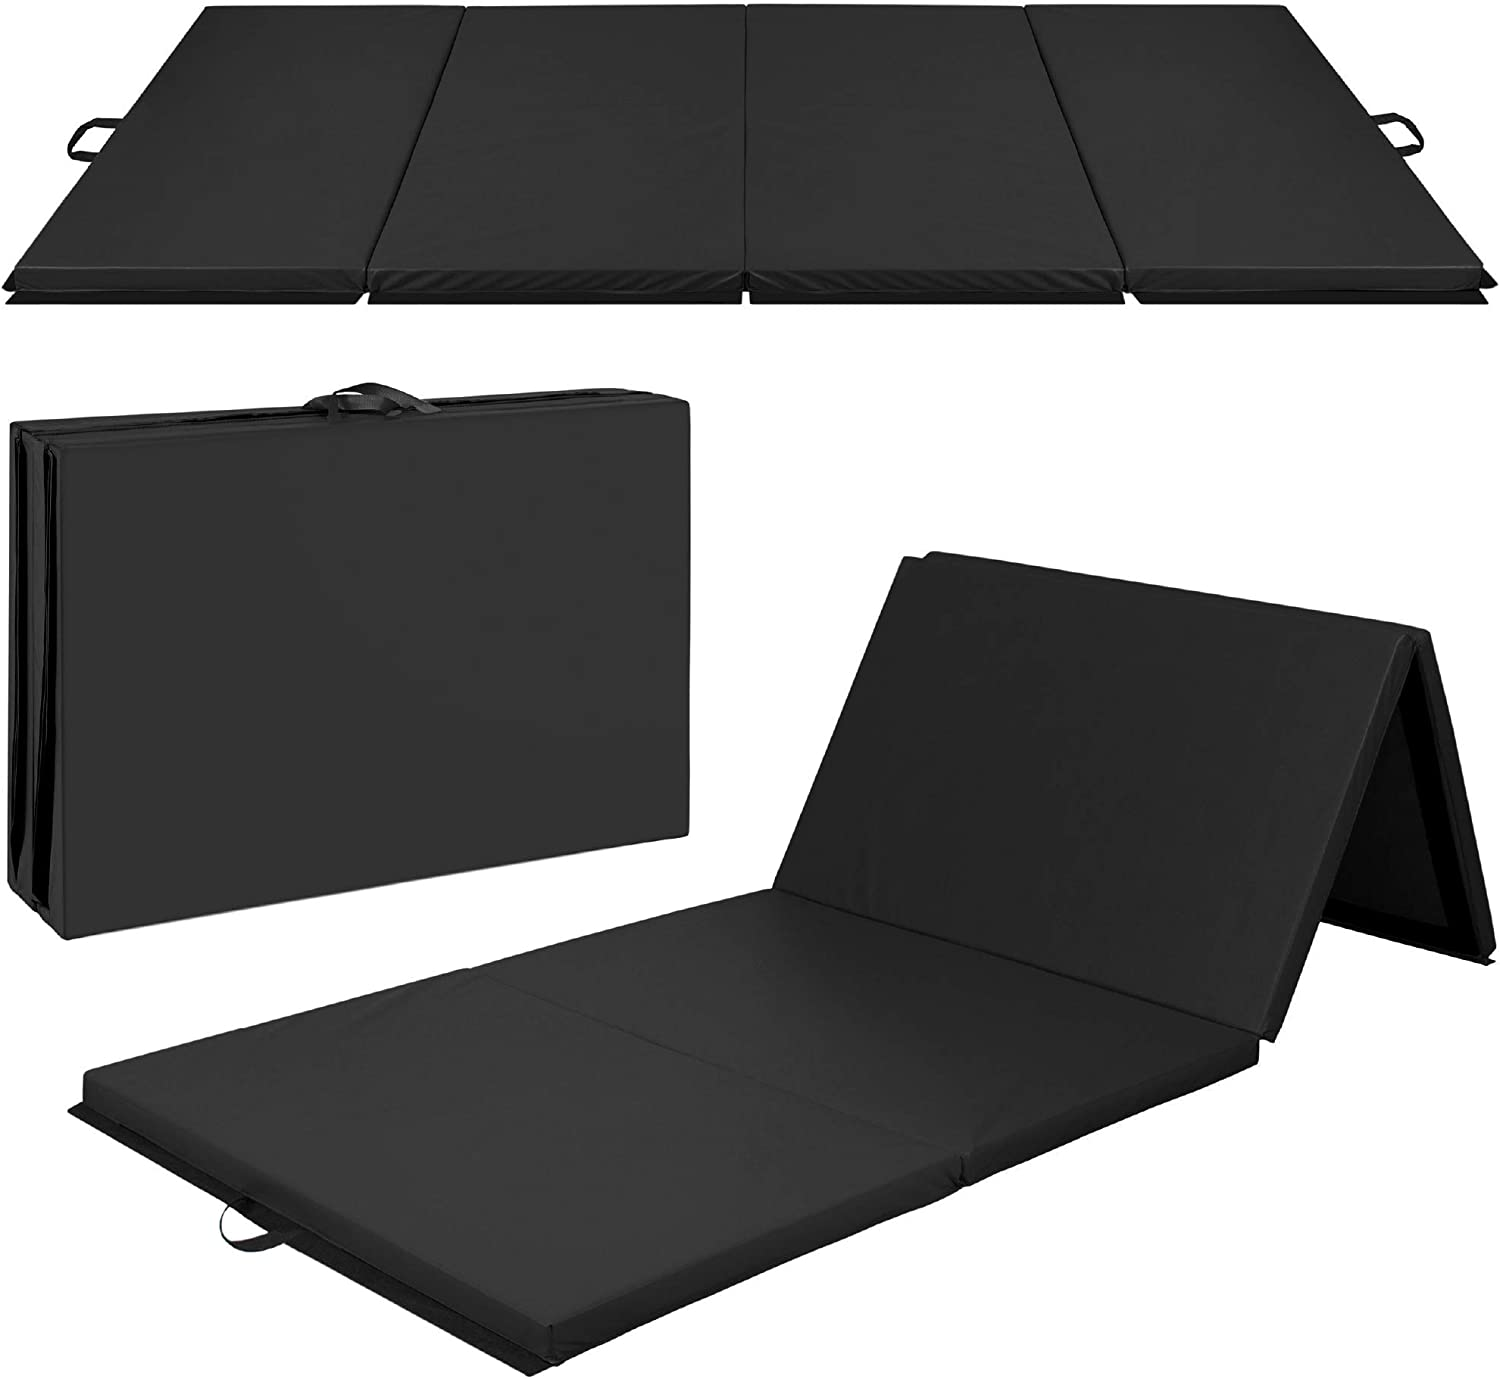 Best Choice Products 10ftx4ftx 2ft Folding Gym Mat 4-Panel Exercise Gymnastics Aerobics Workout Fitness Floor Mats w/ Carrying Handles